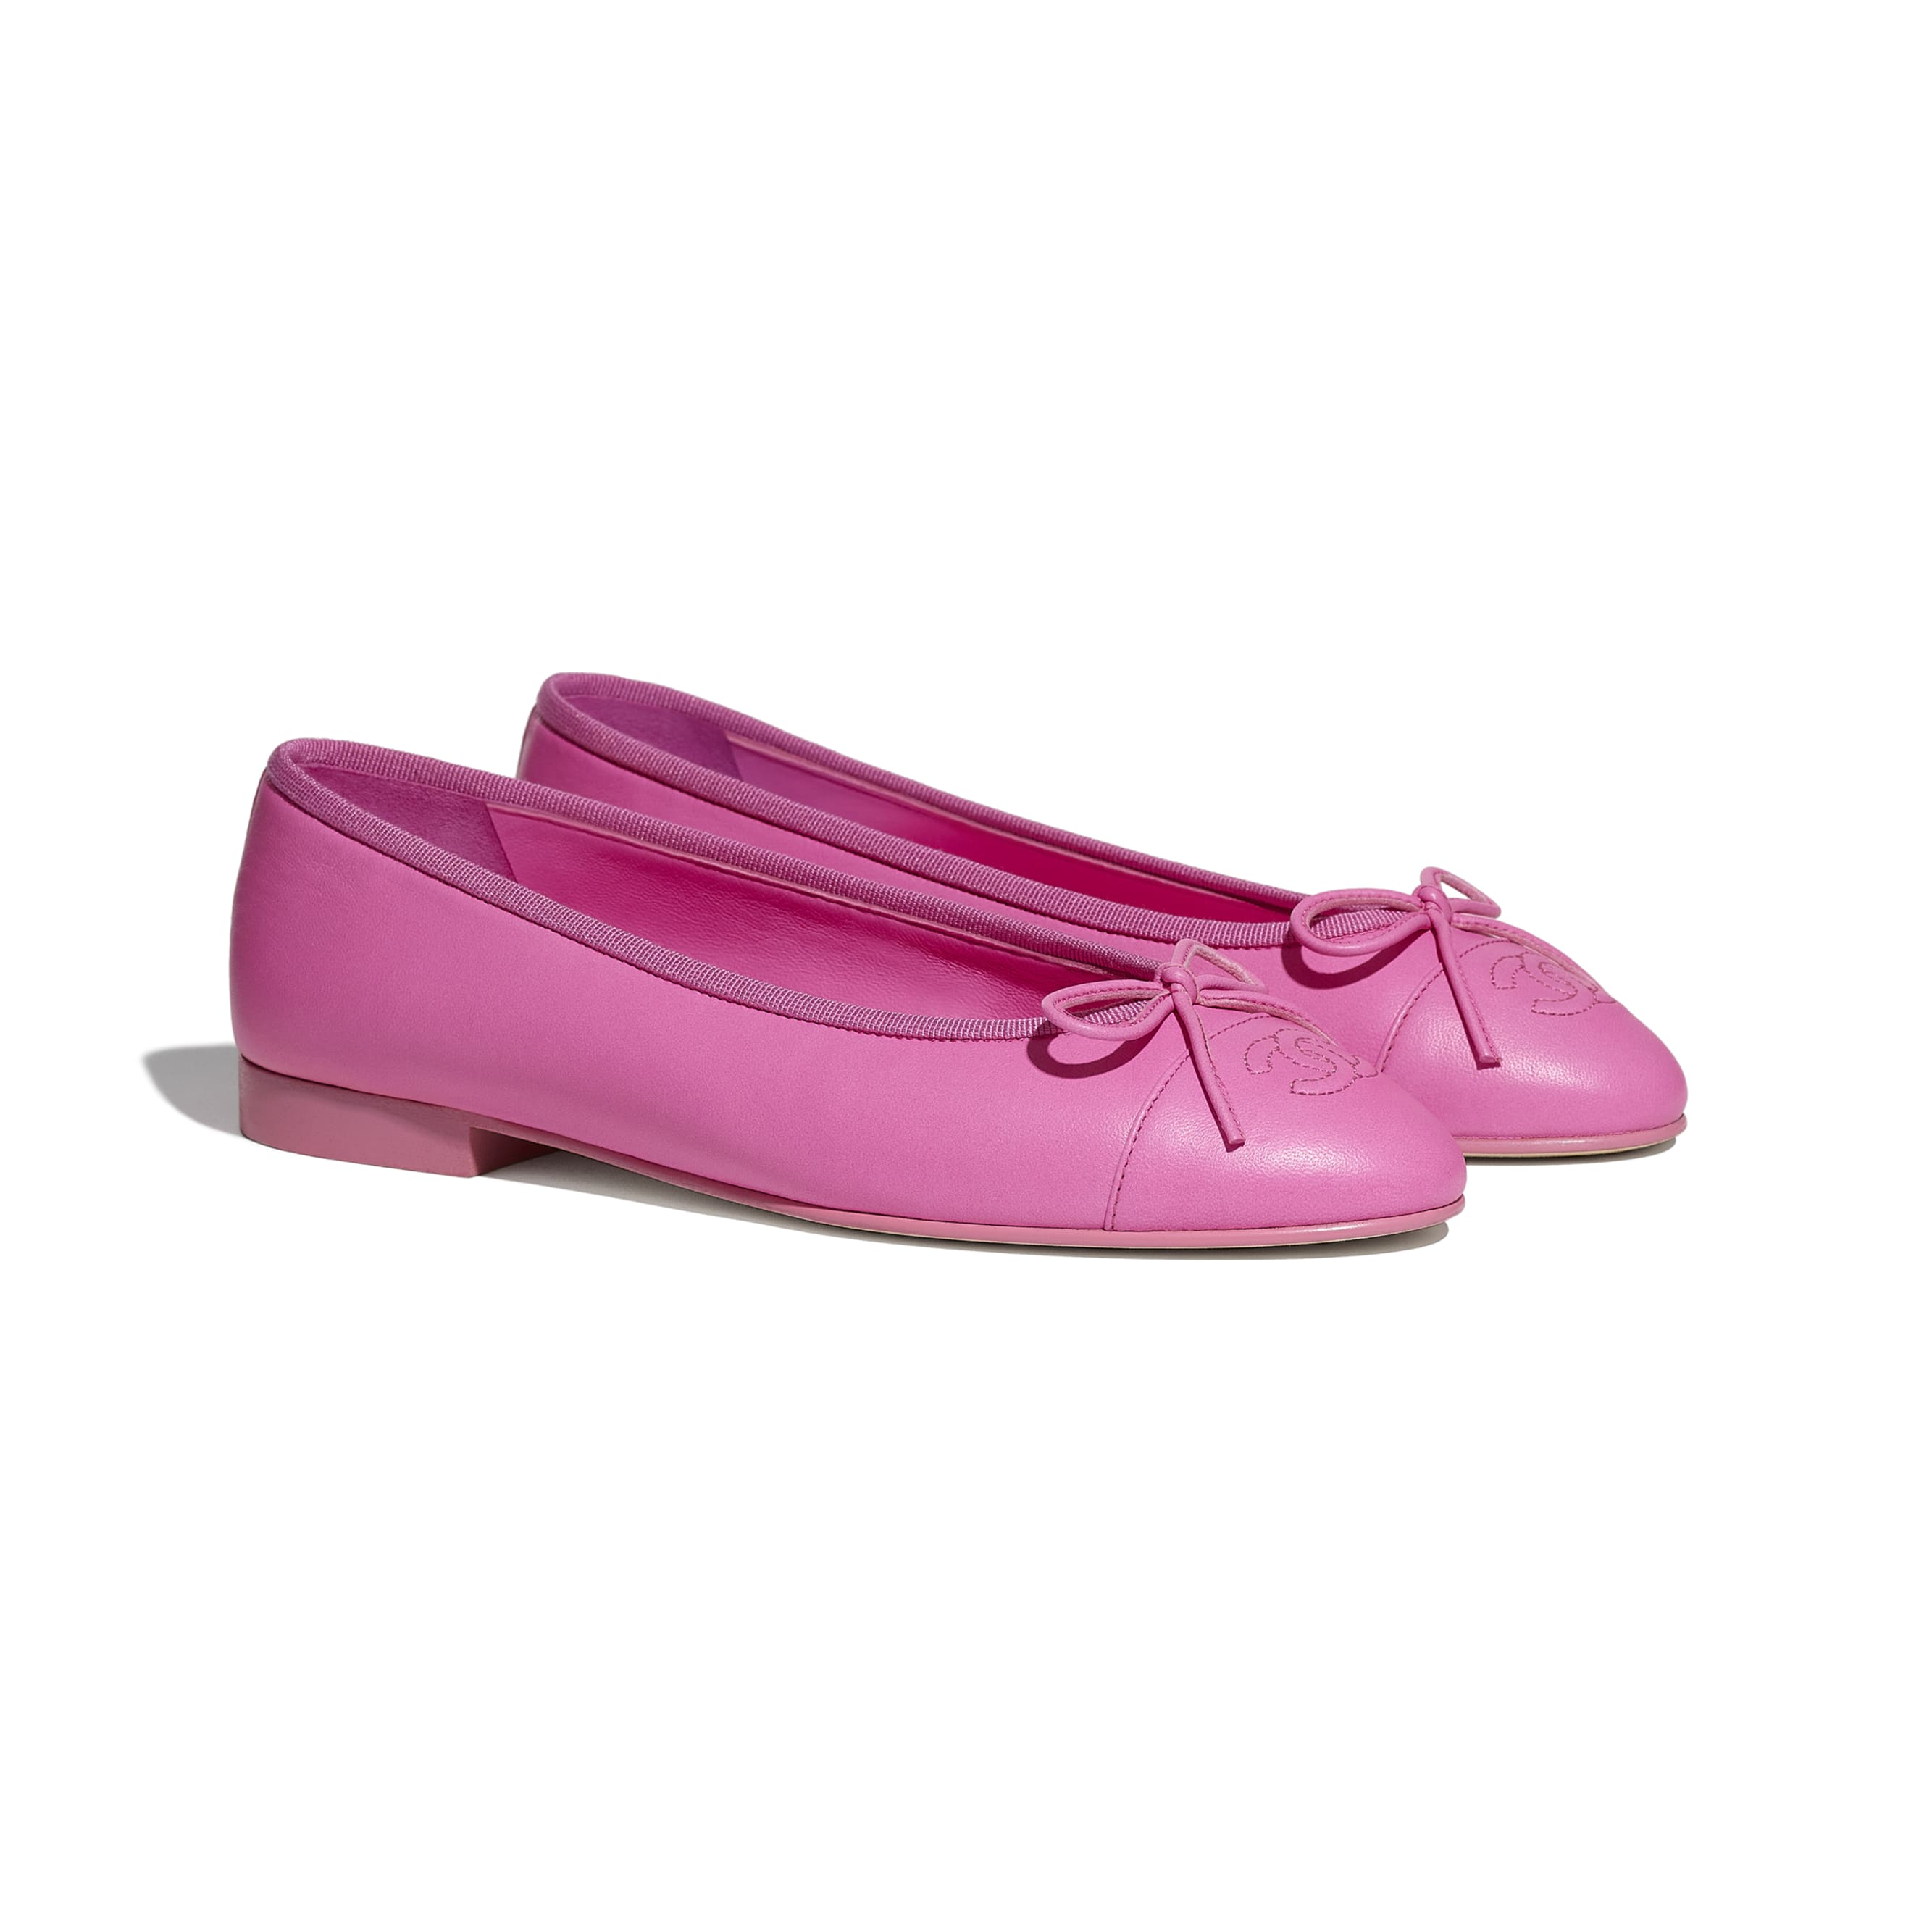 Flats - Neon Pink - Lambskin - CHANEL - Alternative view - see standard sized version